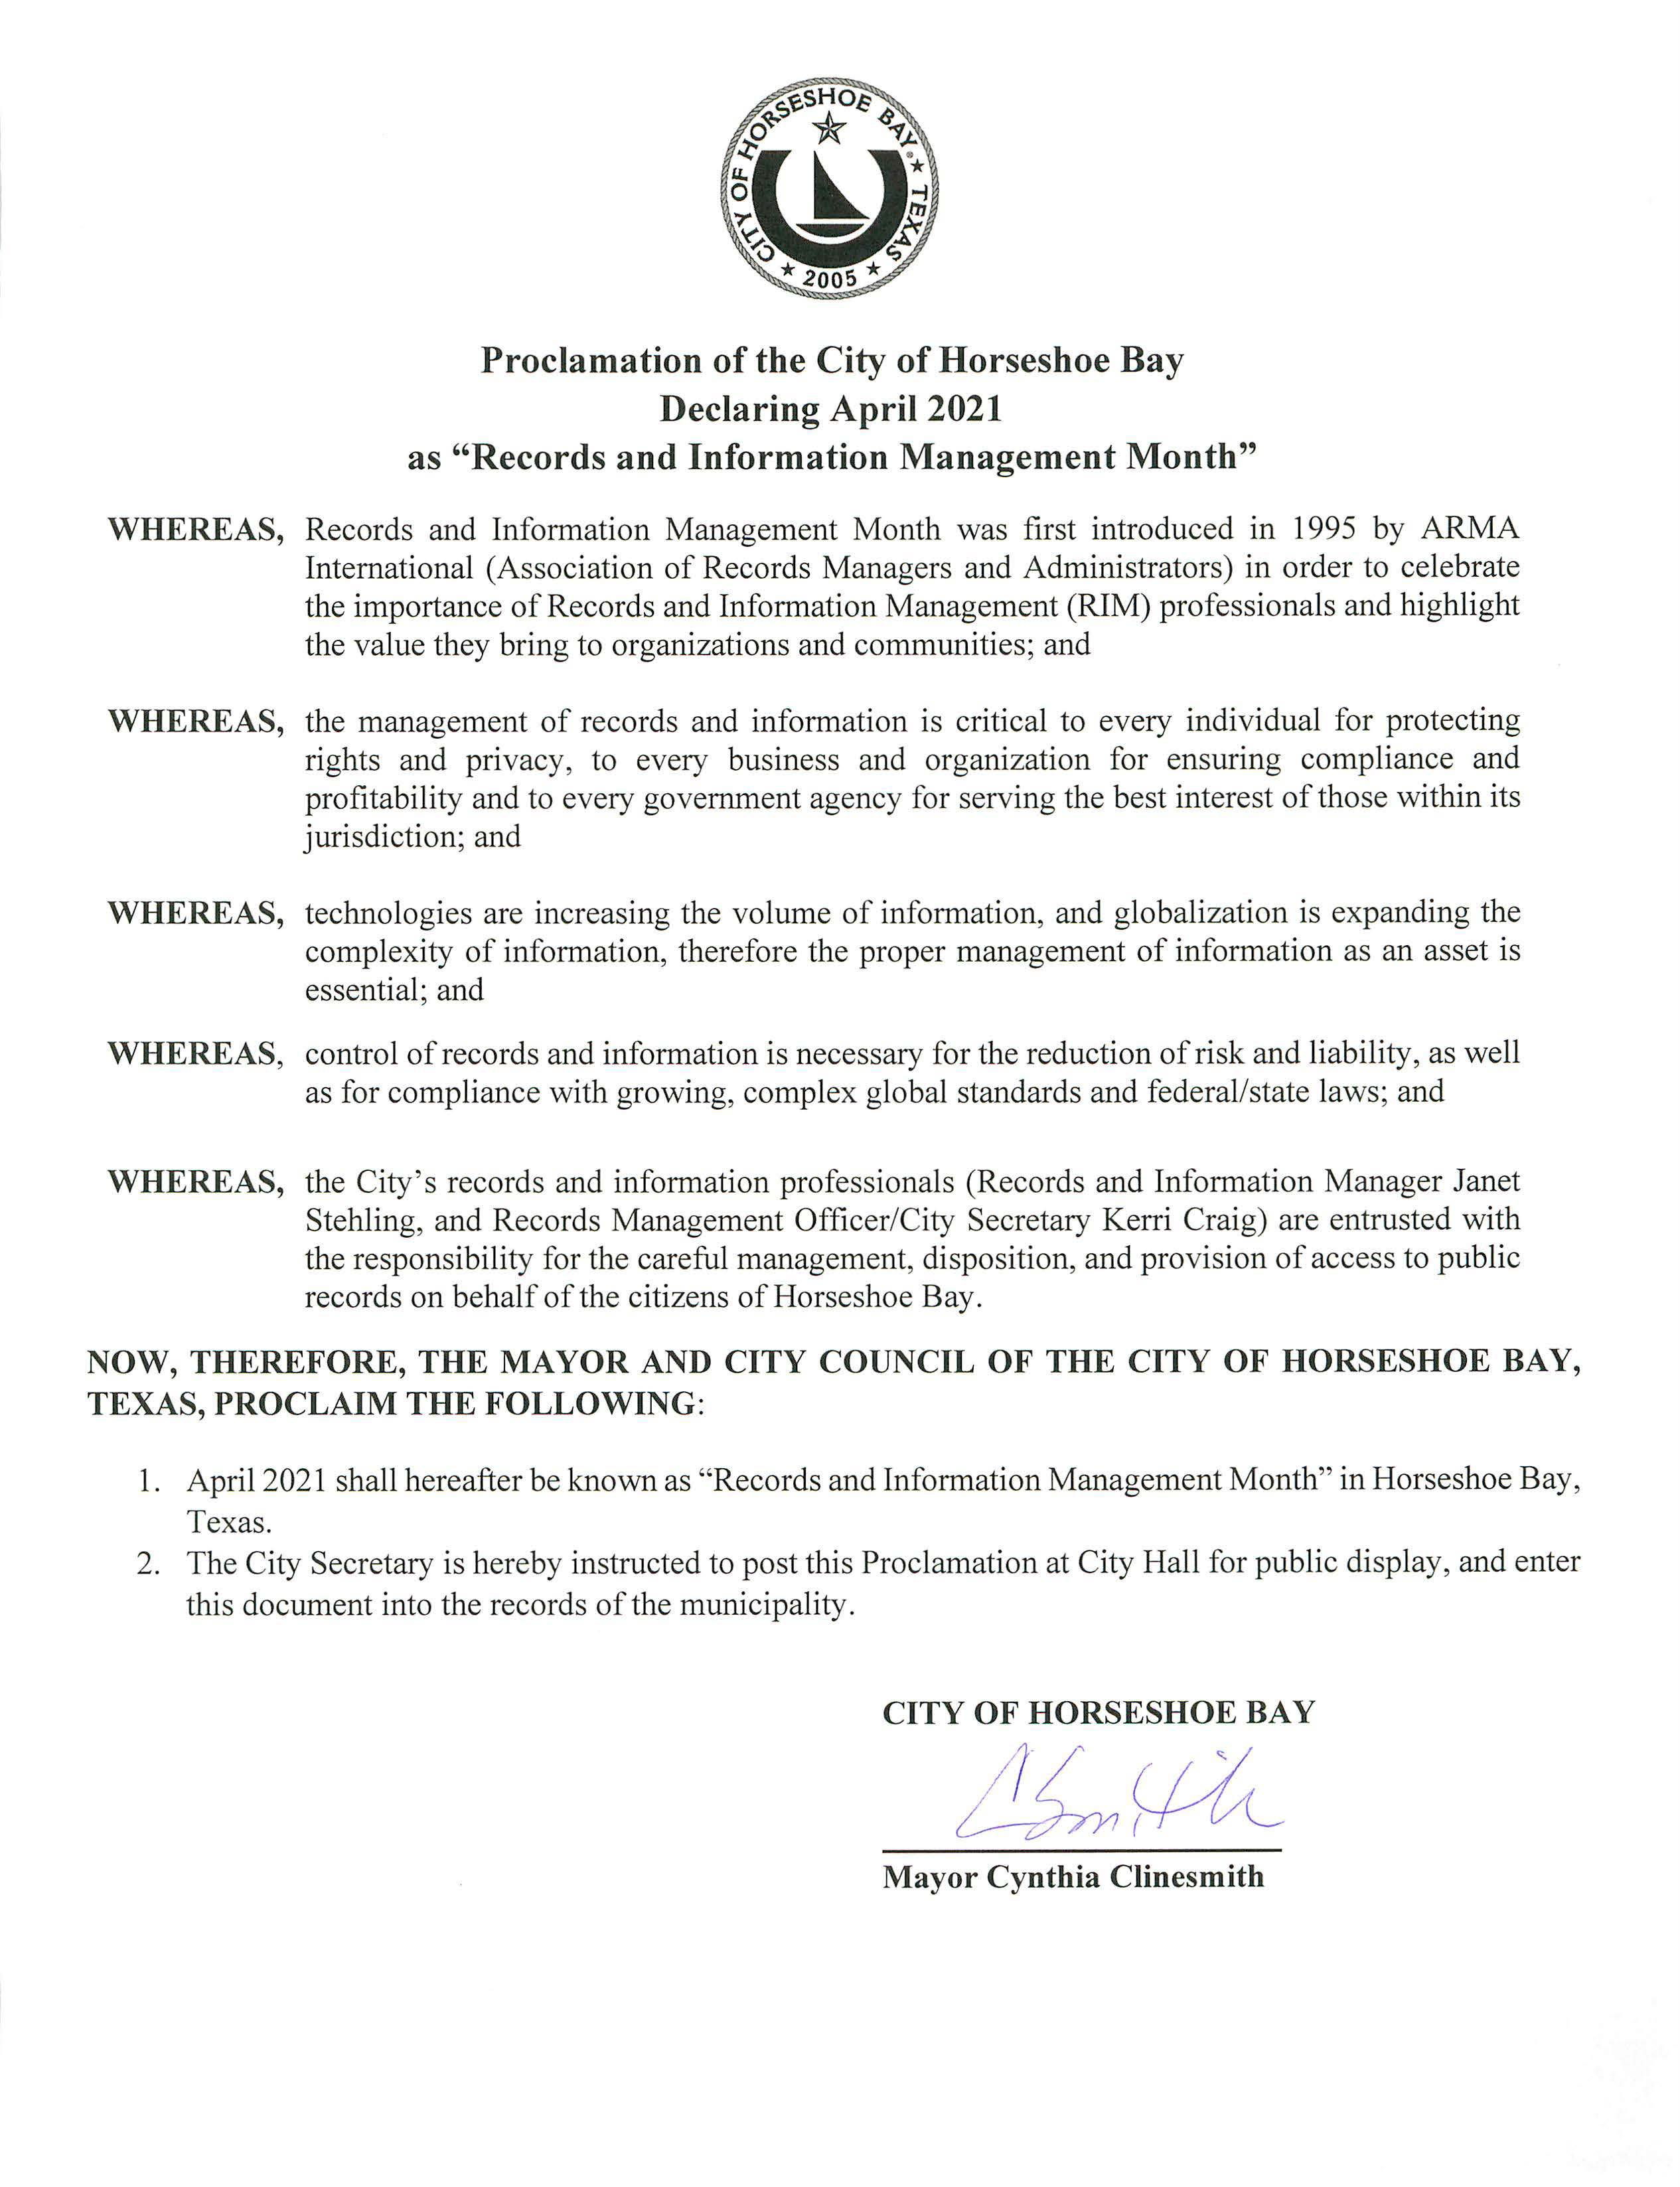 Proclamation Records and Info Mgmt Month